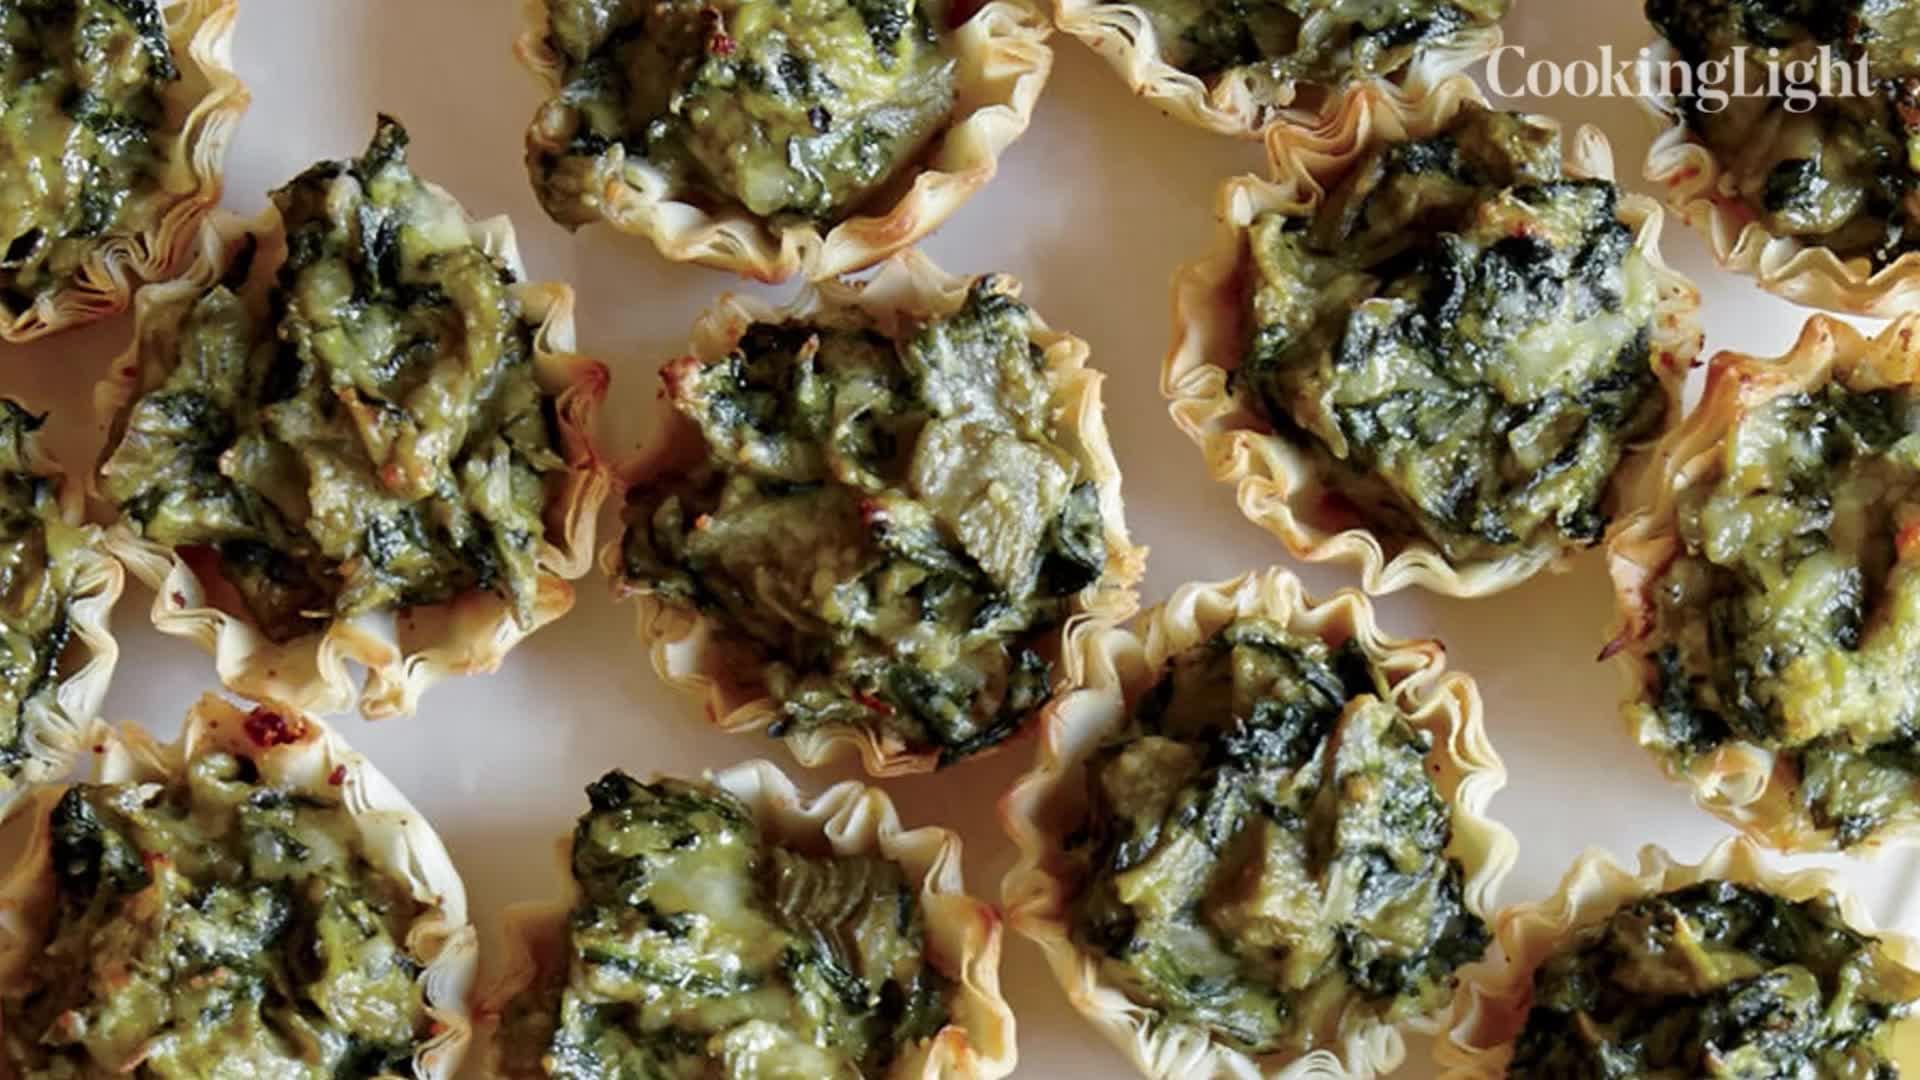 45 Crowd-Pleasing Appetizers for Your Thanksgiving Feast